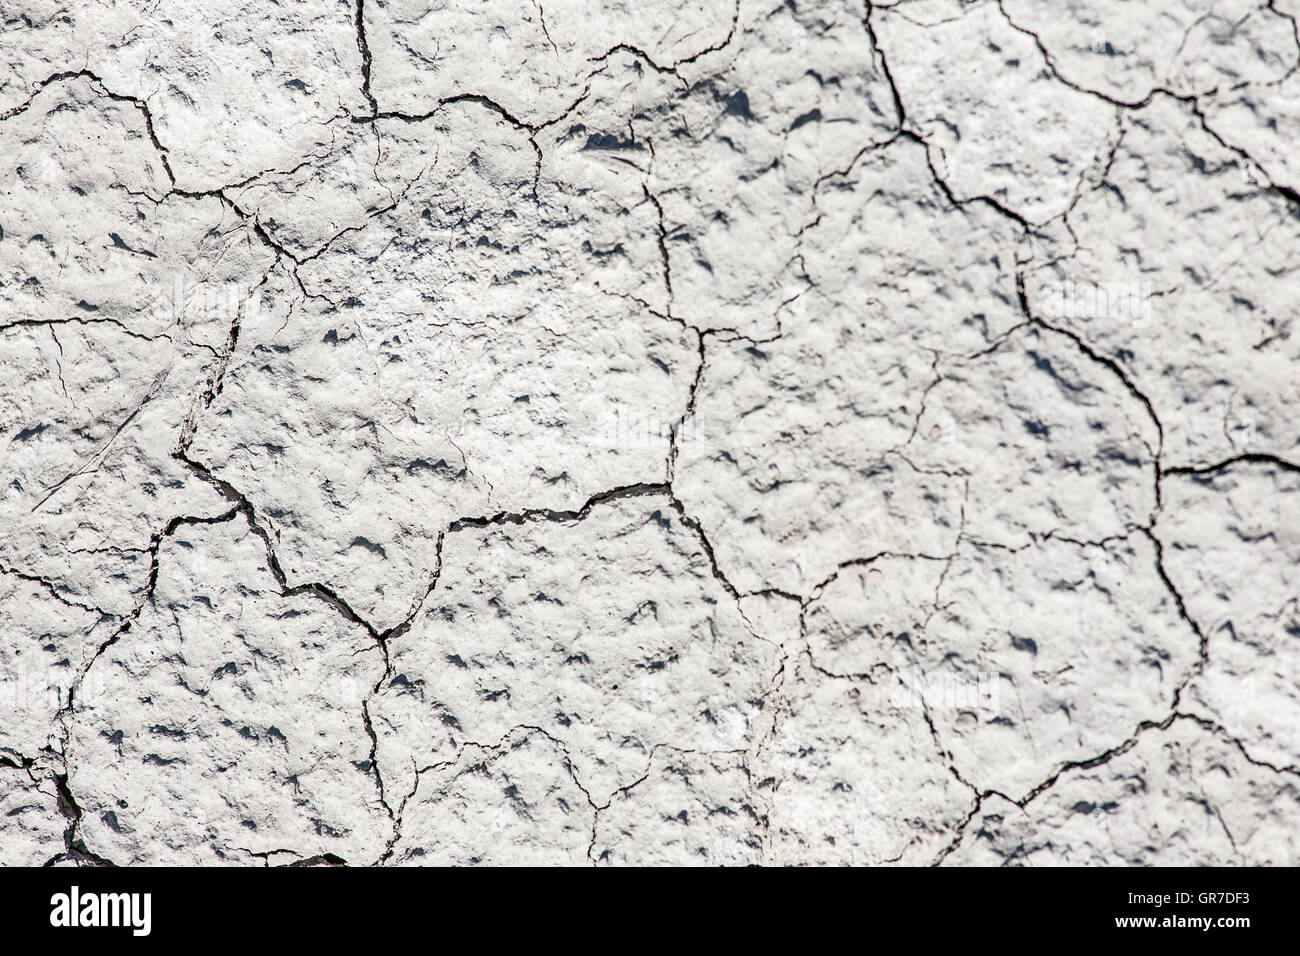 Dried Ground After A Hot Summer In The Tuscan Crete - Stock Image